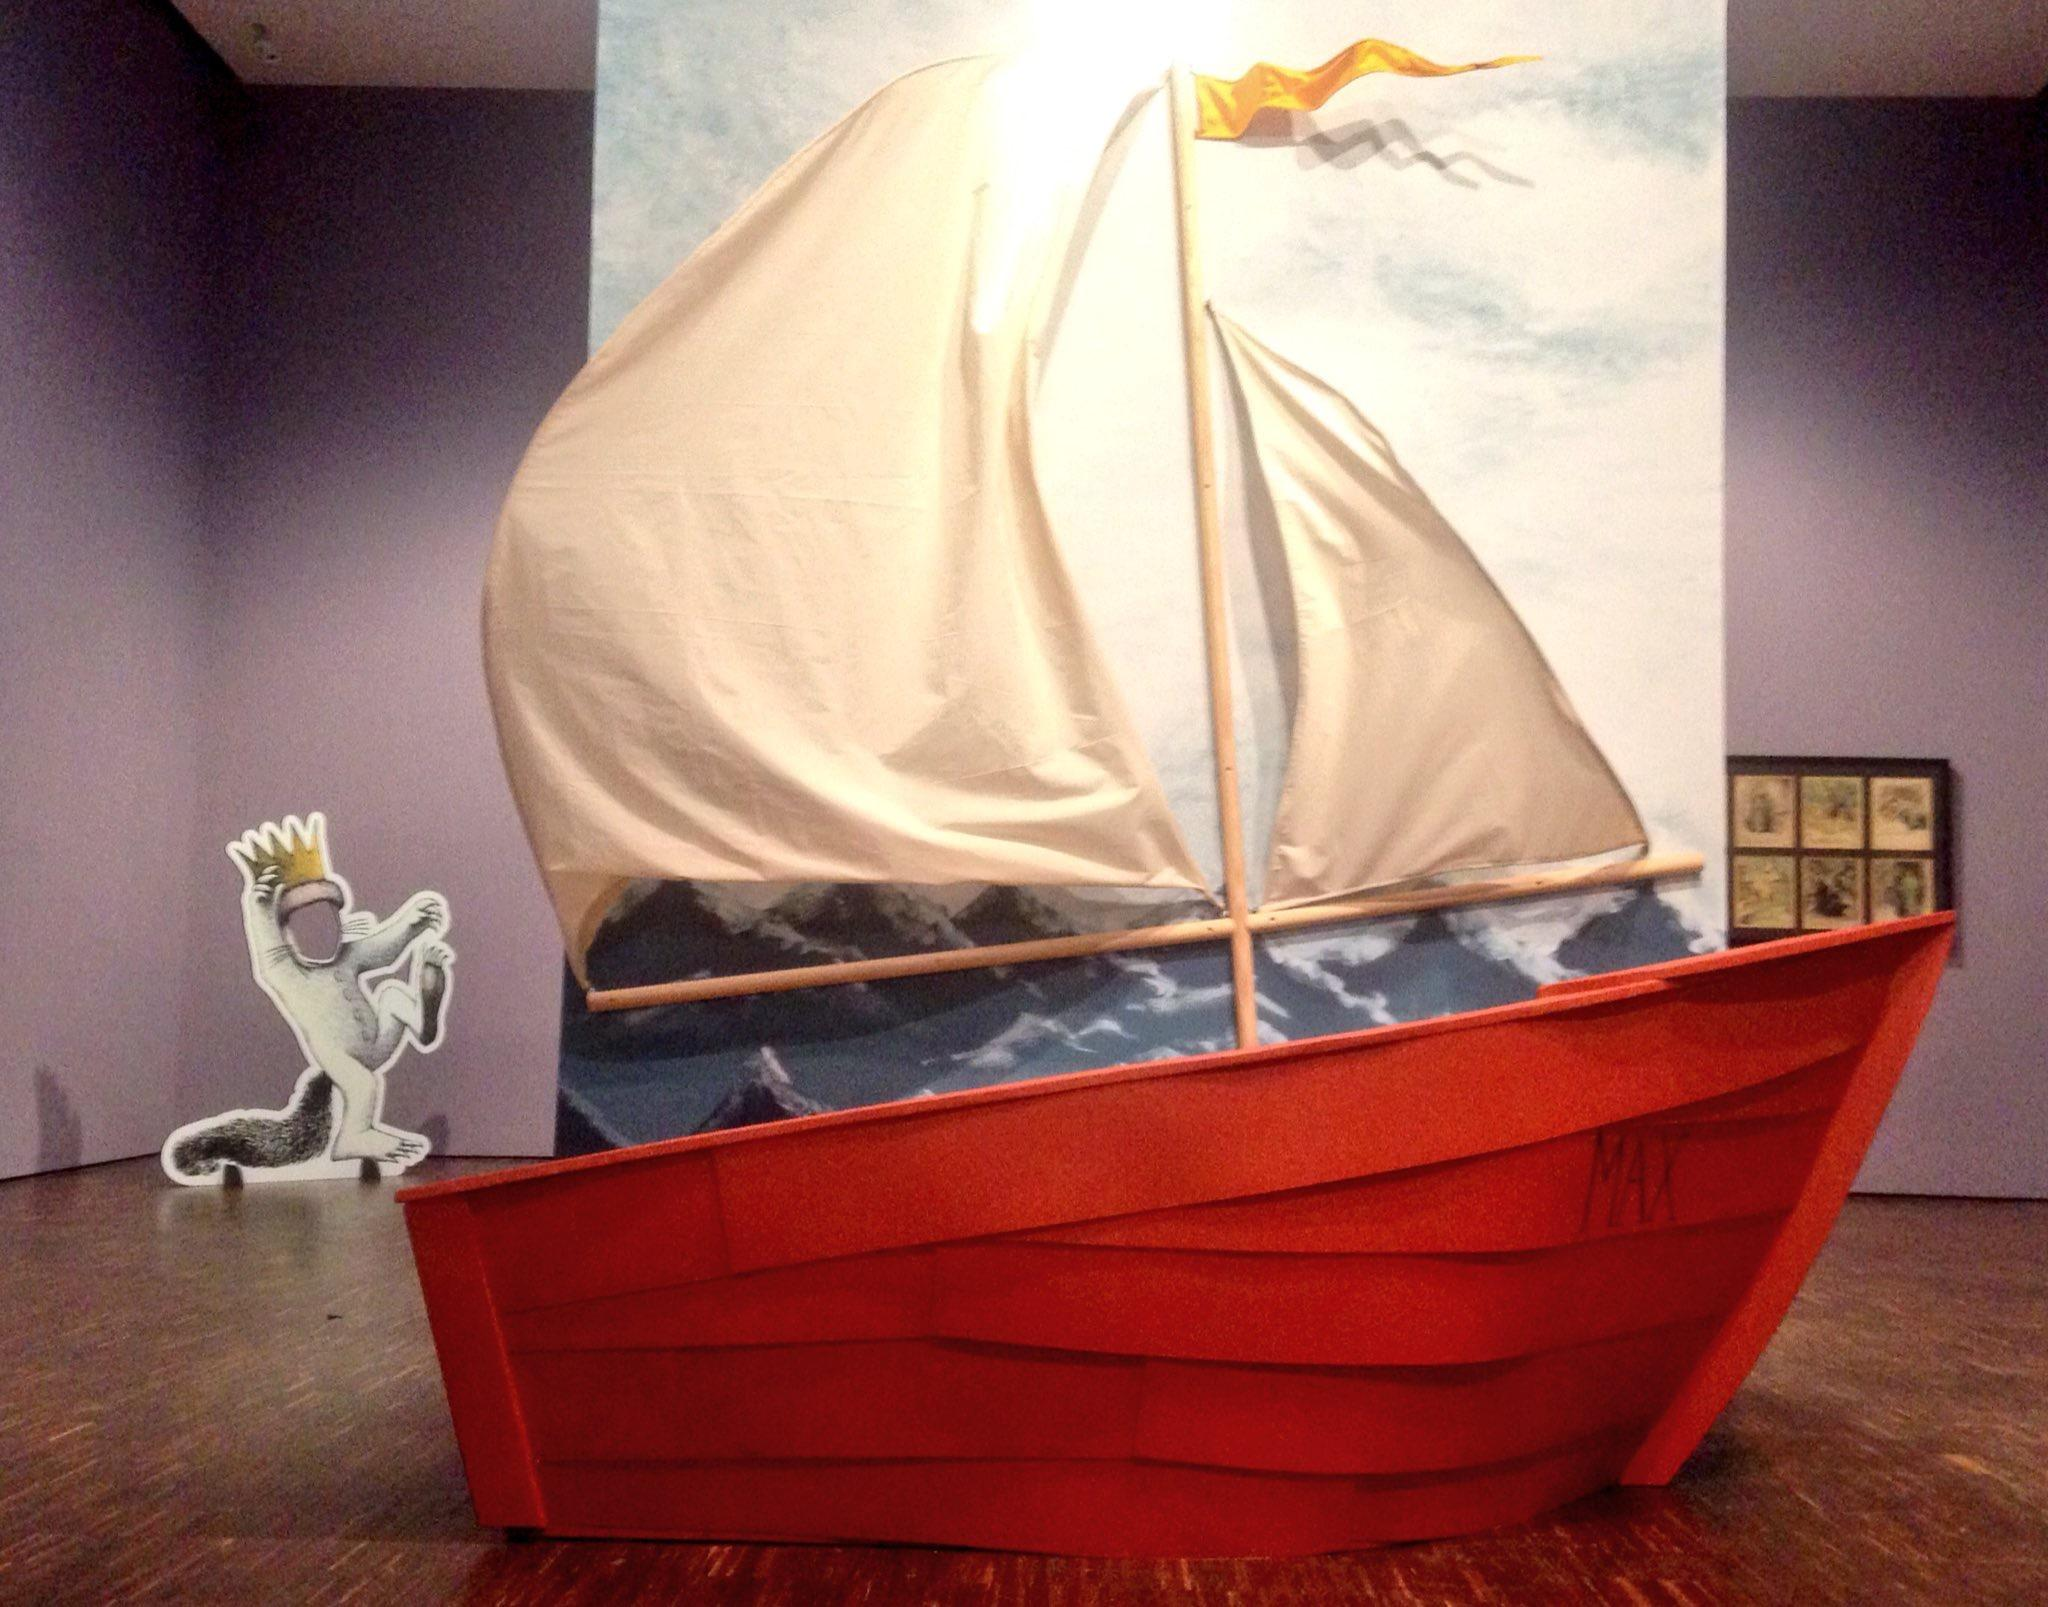 Visitors to the exhibit can pose behind a life-size model of Max\u0027s sailboat from the book as well as his tent. & Where The Wild Things Are\